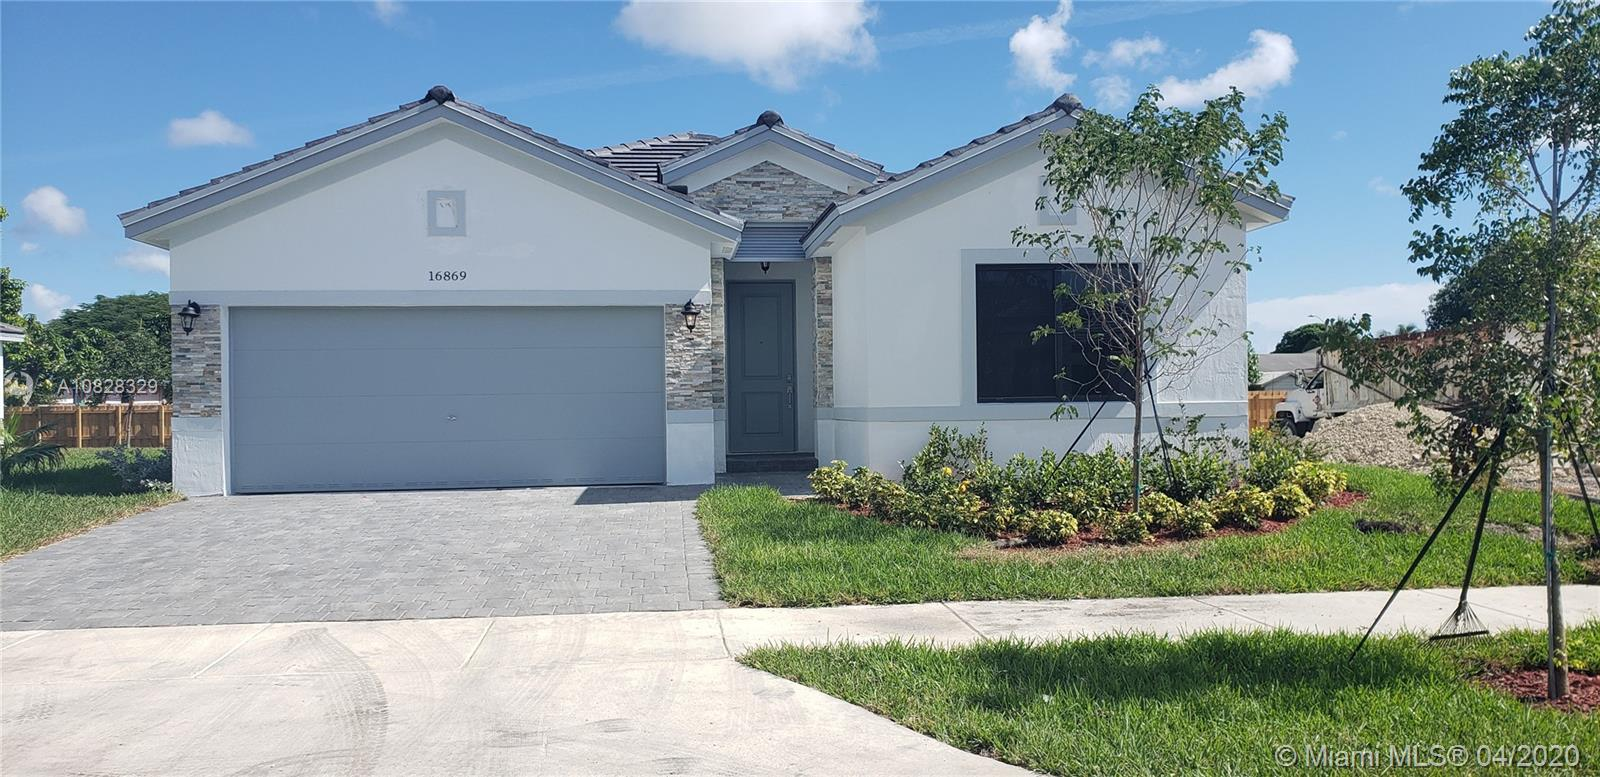 29960 SW 157 Ave, Homestead, FL 33033 - Homestead, FL real estate listing